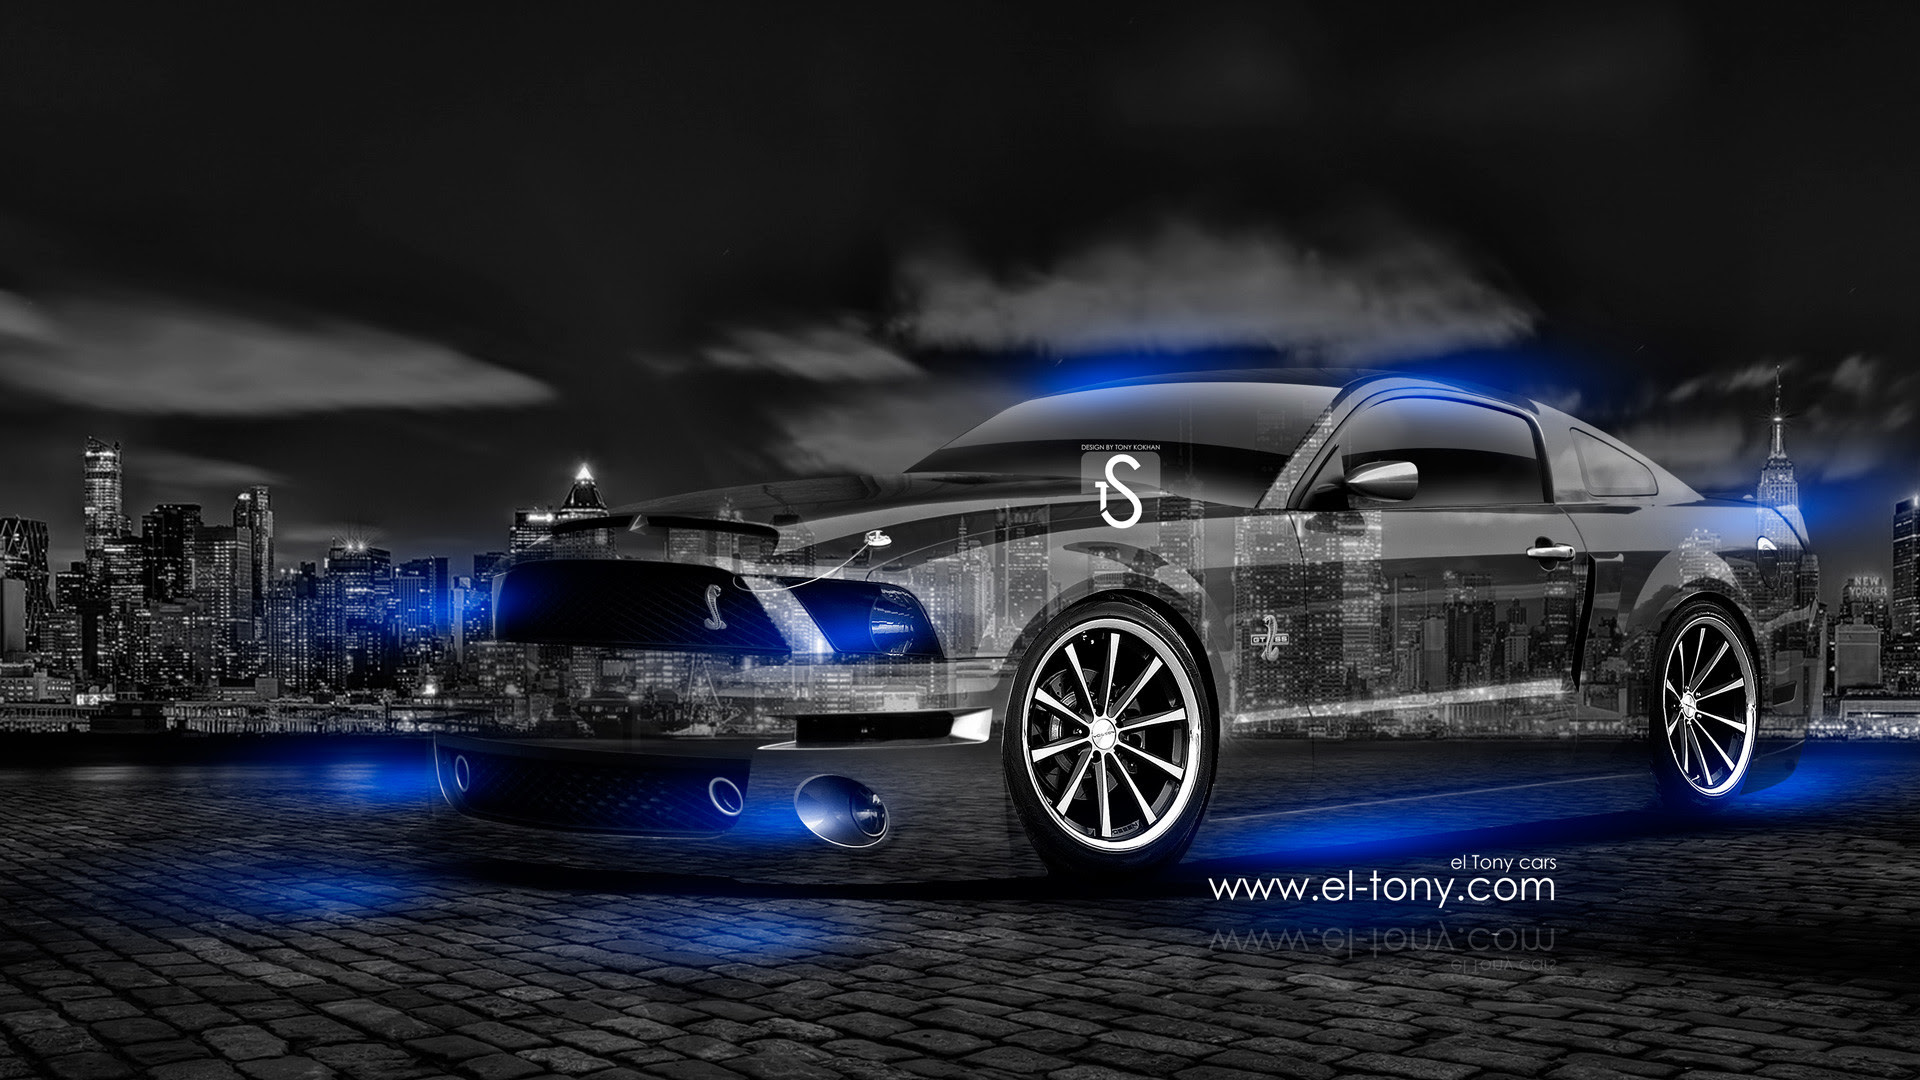 Cool Muscle Car Wallpapers 67+ images